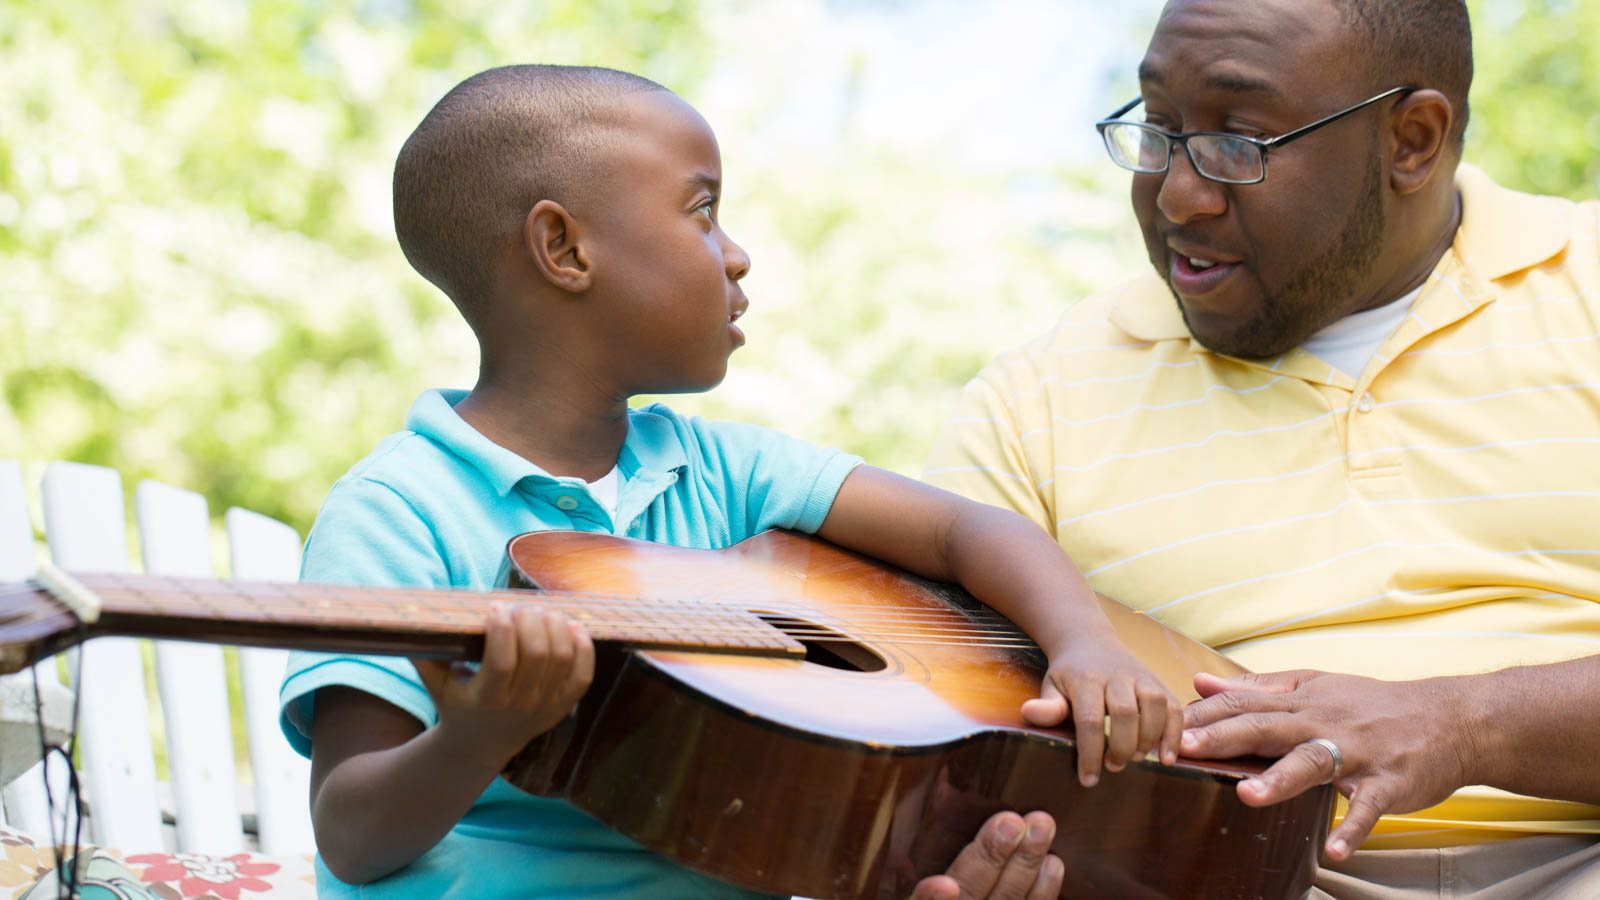 father showing son how to play the guitar